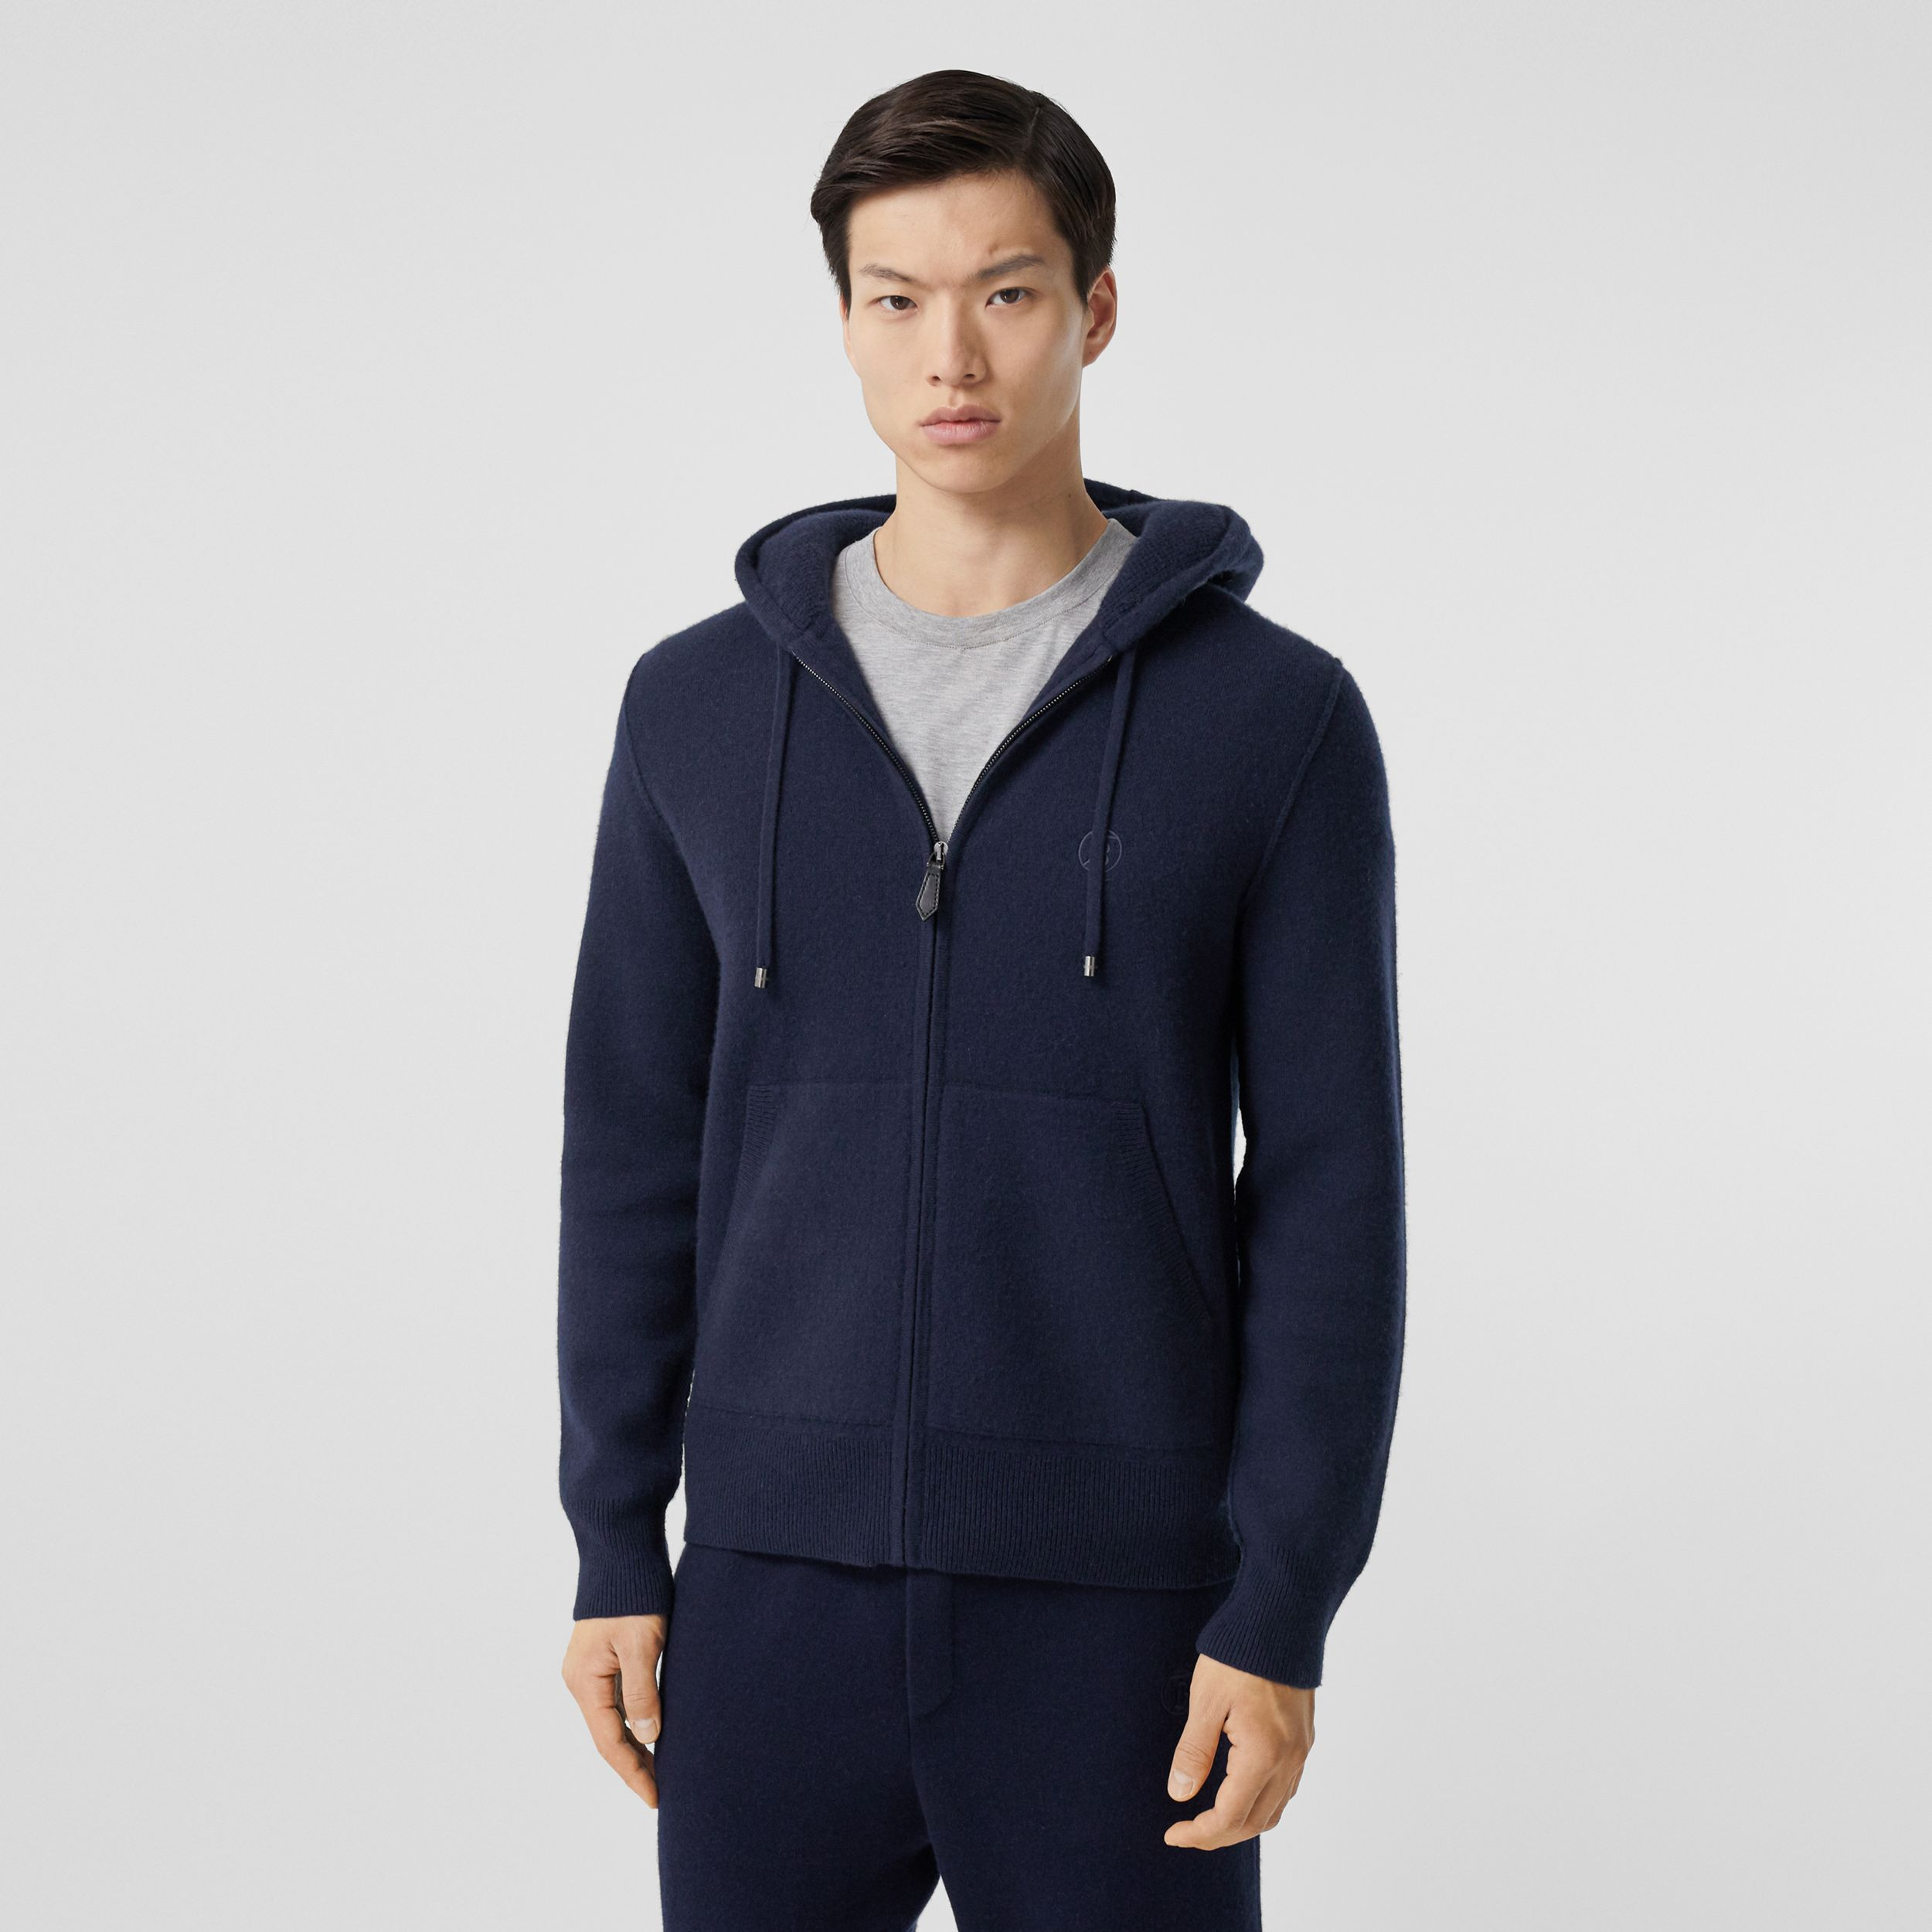 Monogram Motif Cashmere Blend Hooded Top in Navy - Men | Burberry - 1